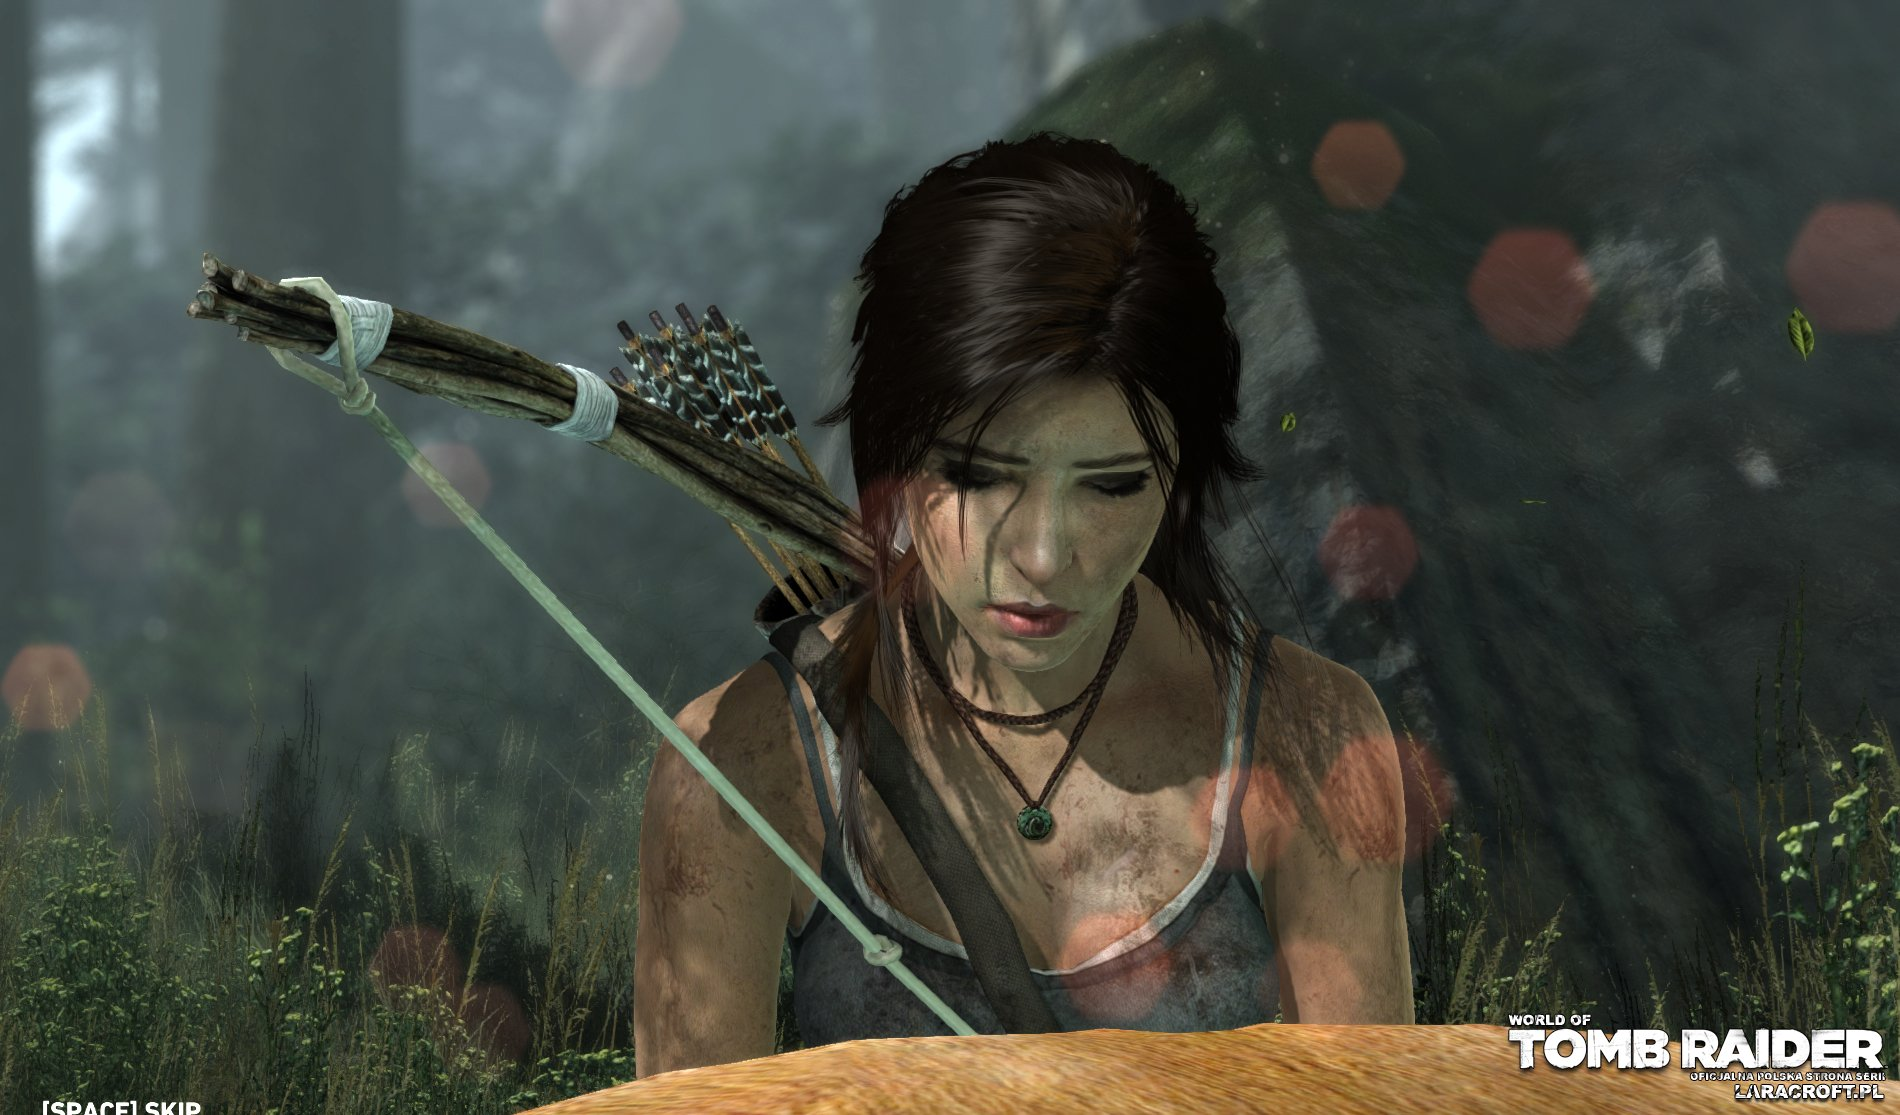 Tombraider cartoon images